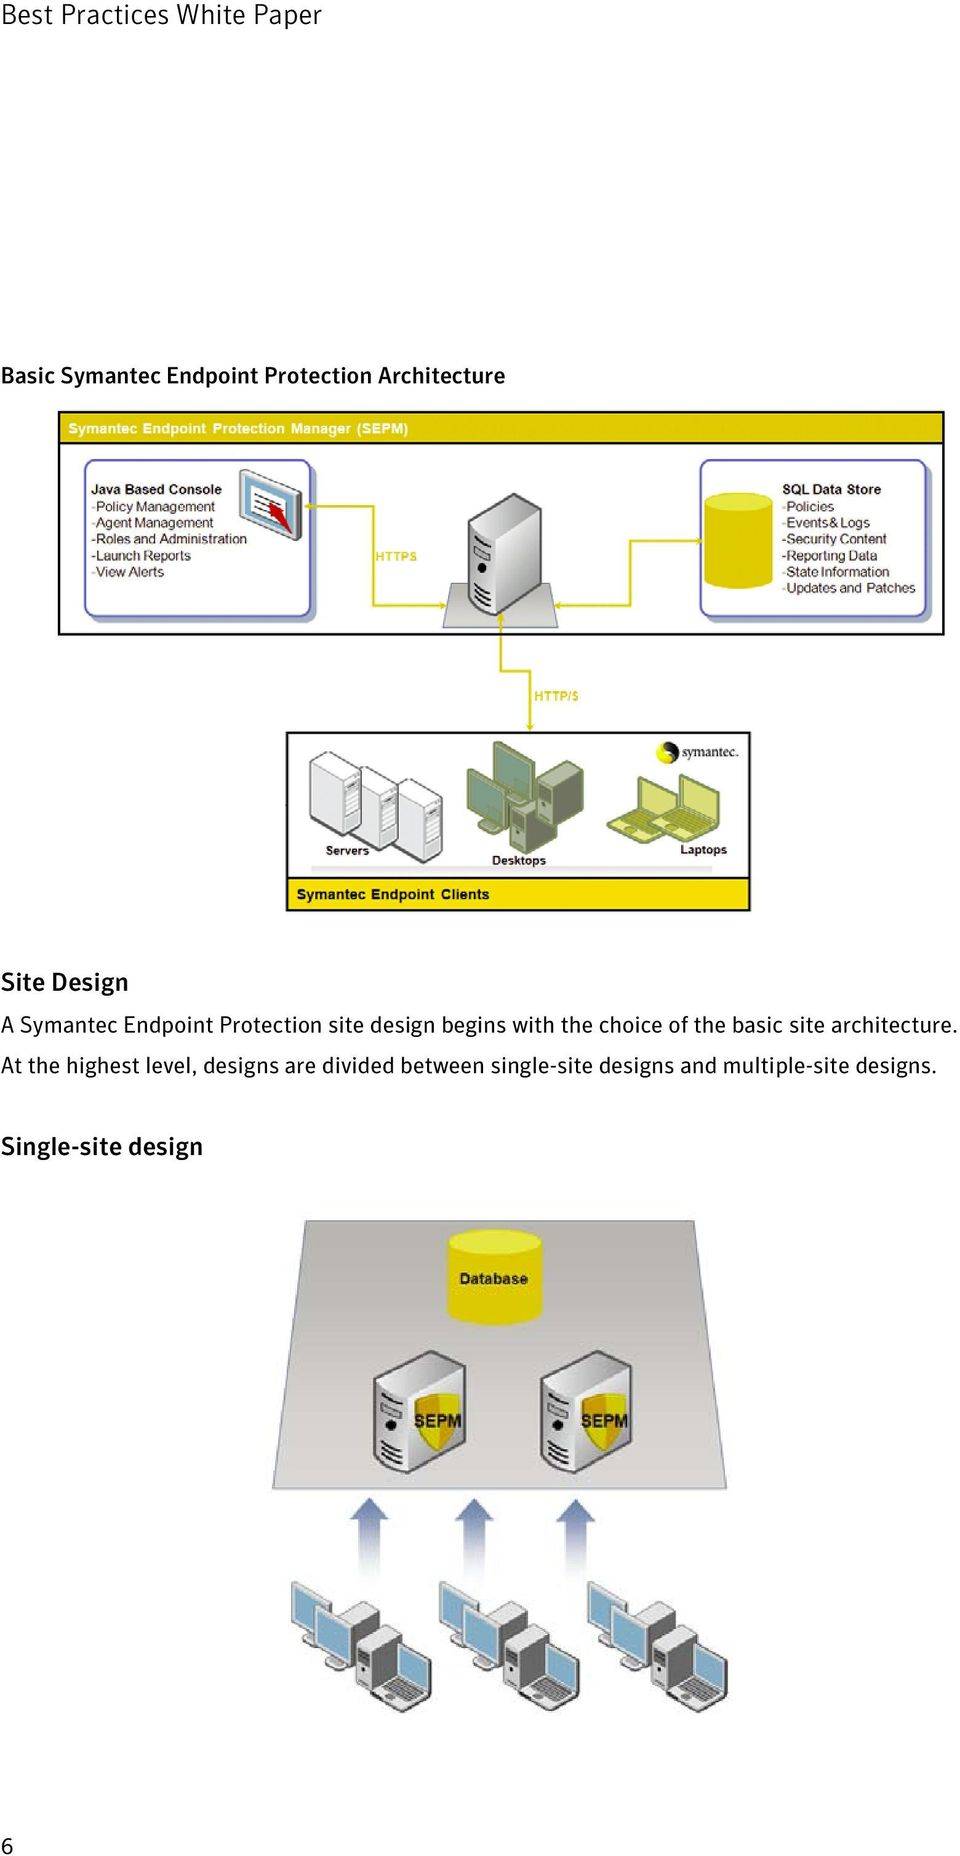 symantec endpoint protection architecture diagram 2001 dodge ram fuse box white paper best practices sizing and scalability recommendations